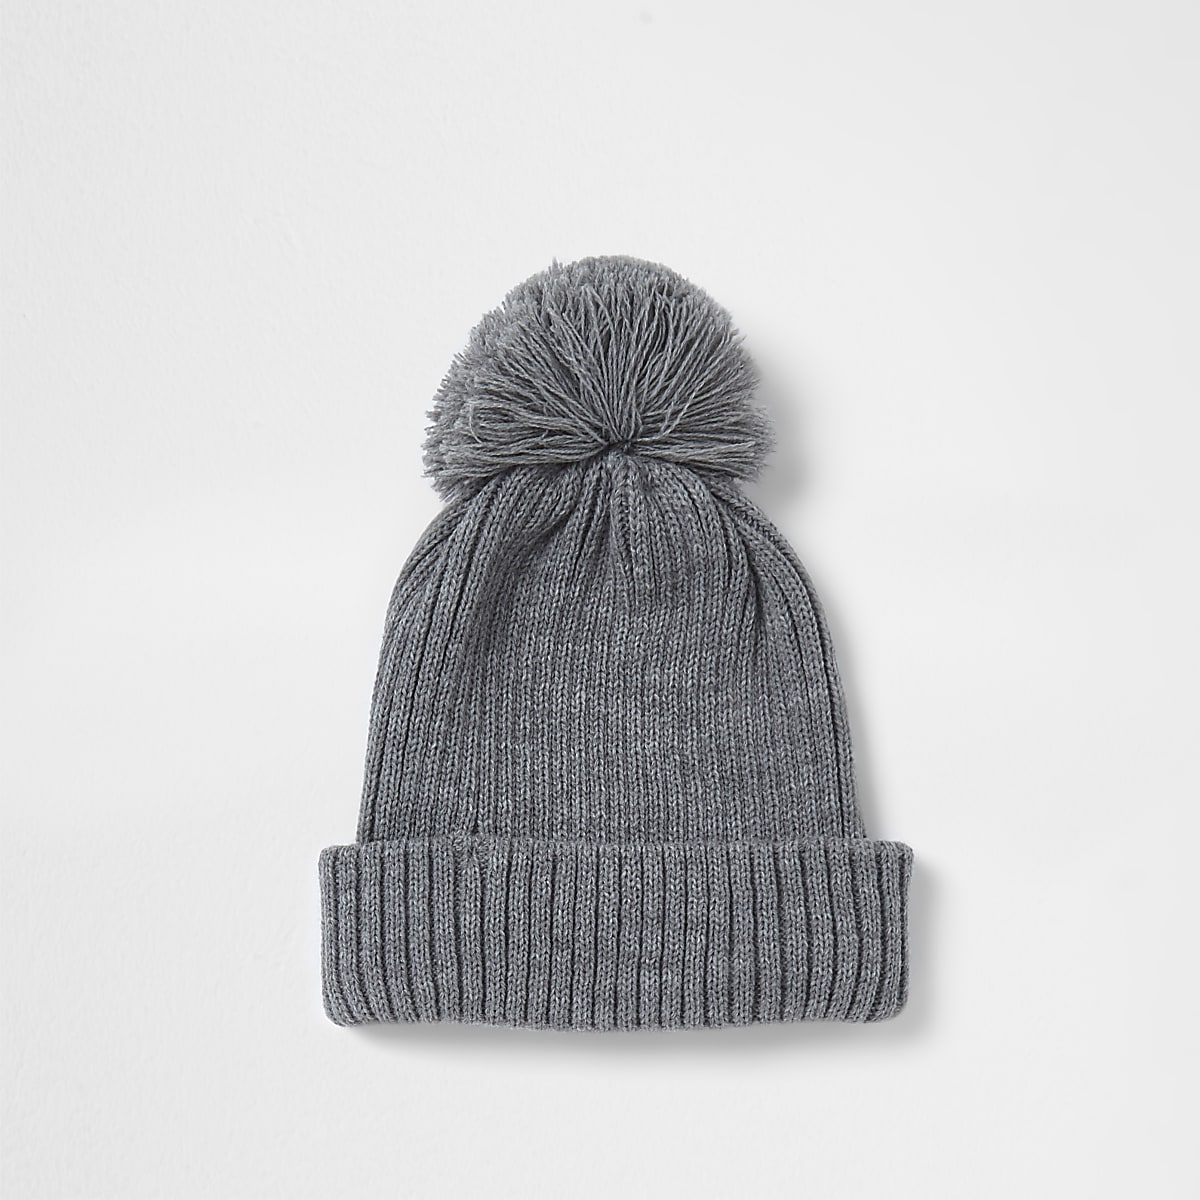 Grey rib knit bobble beanie hat